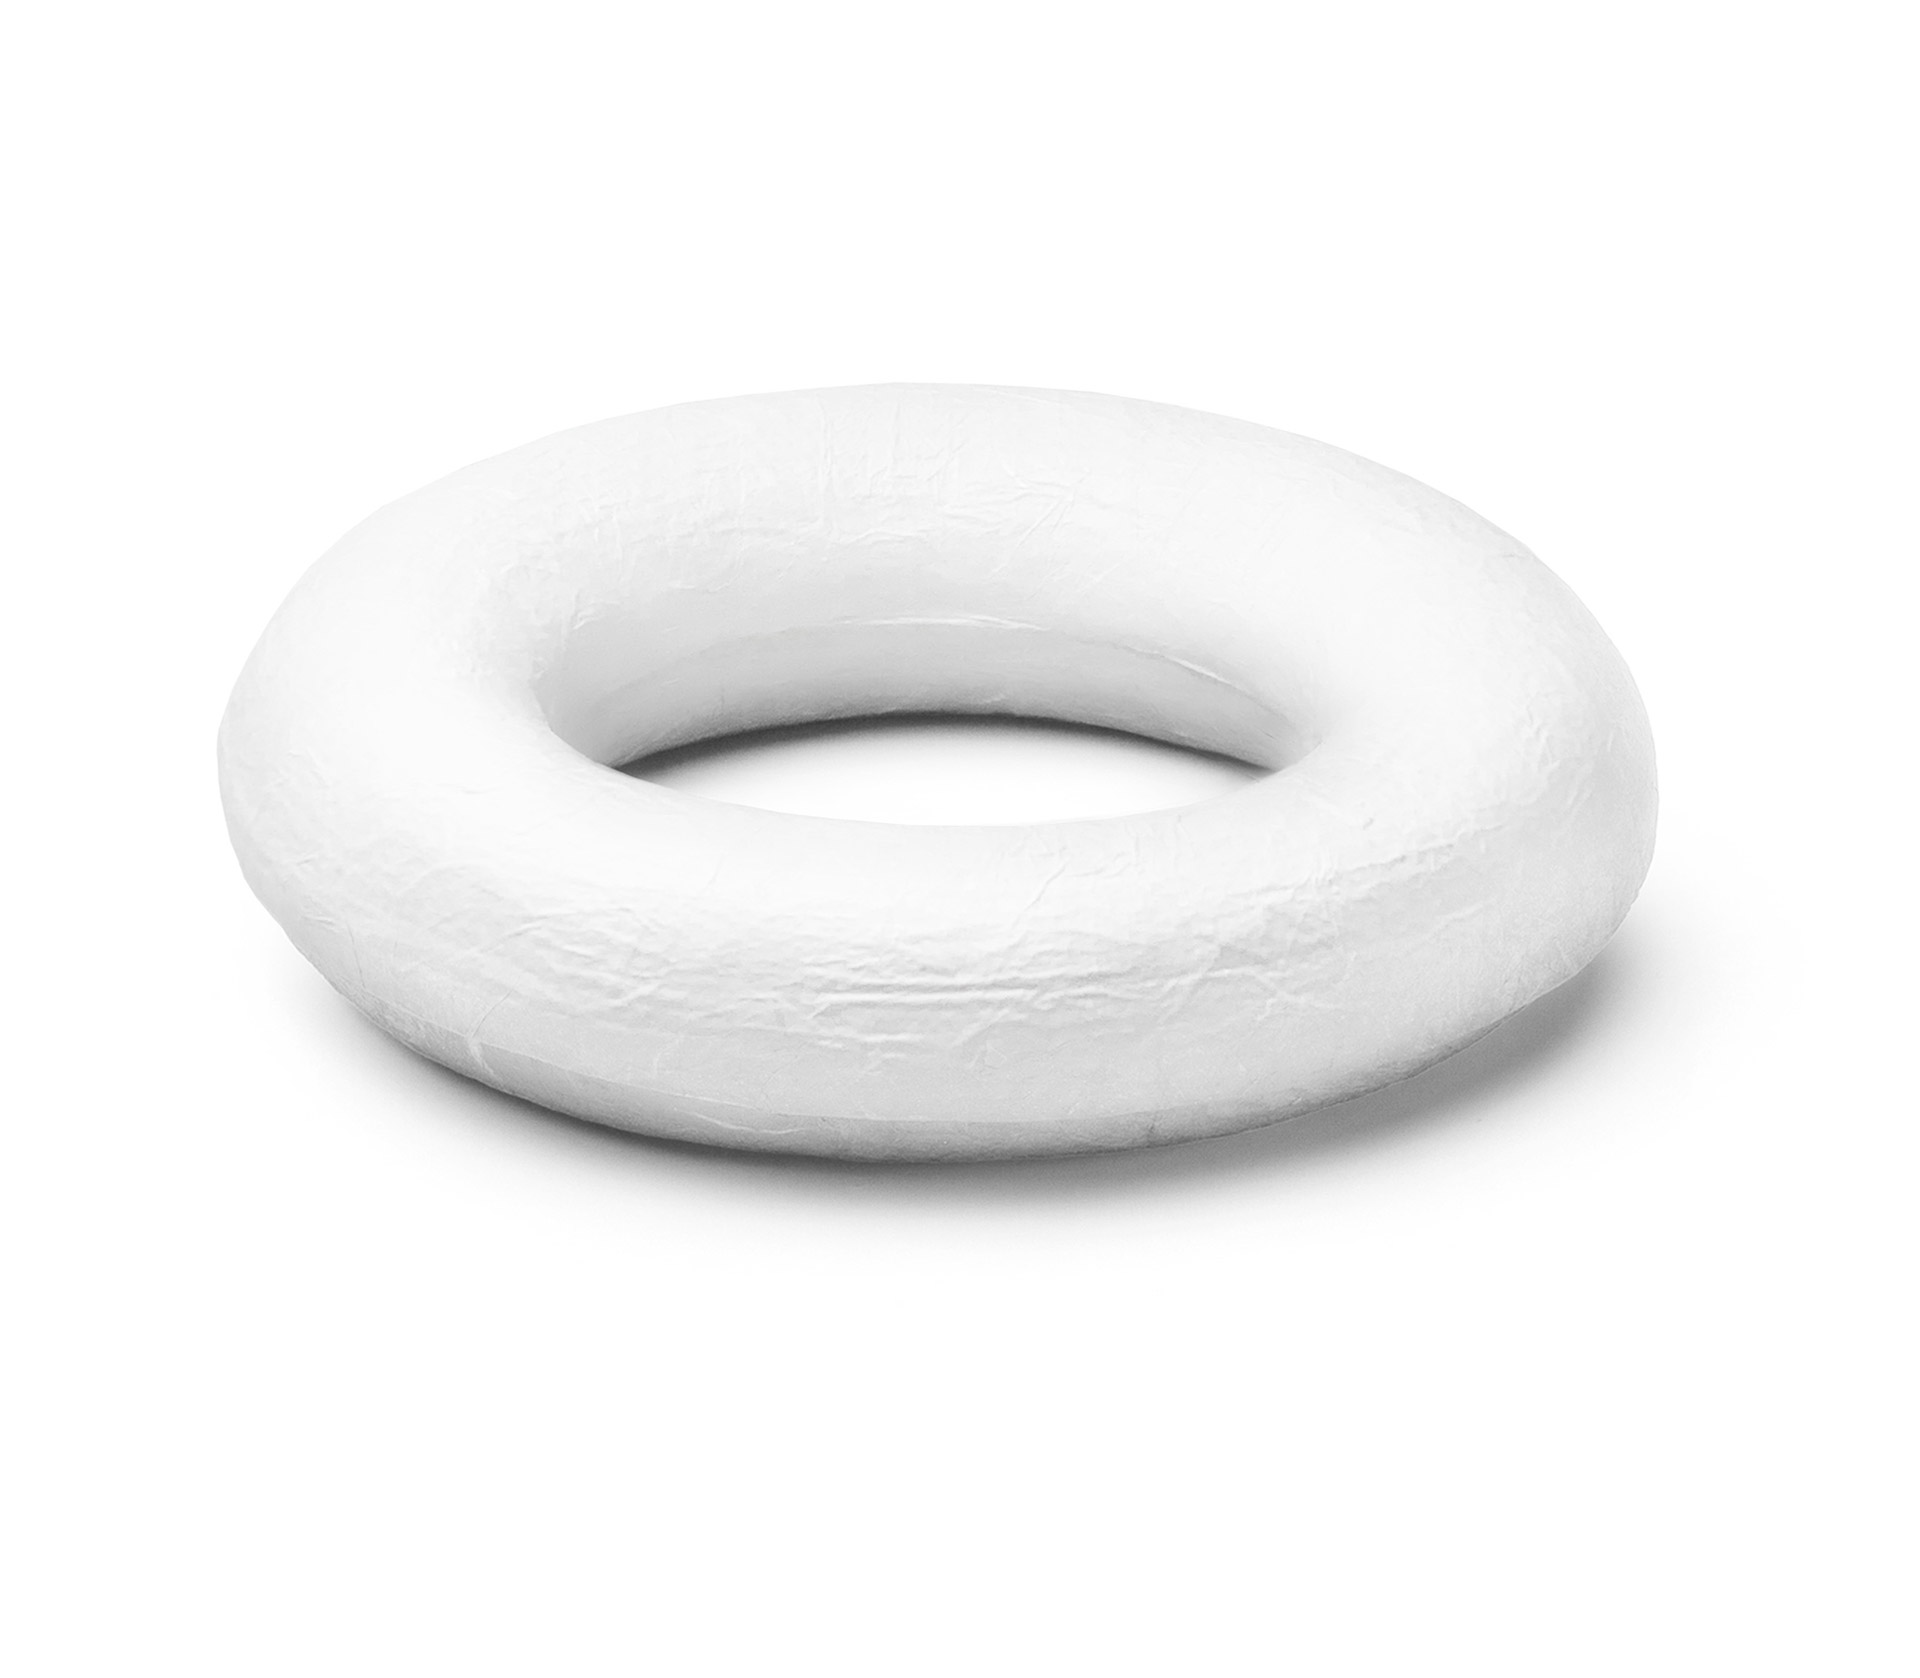 DONUT large white